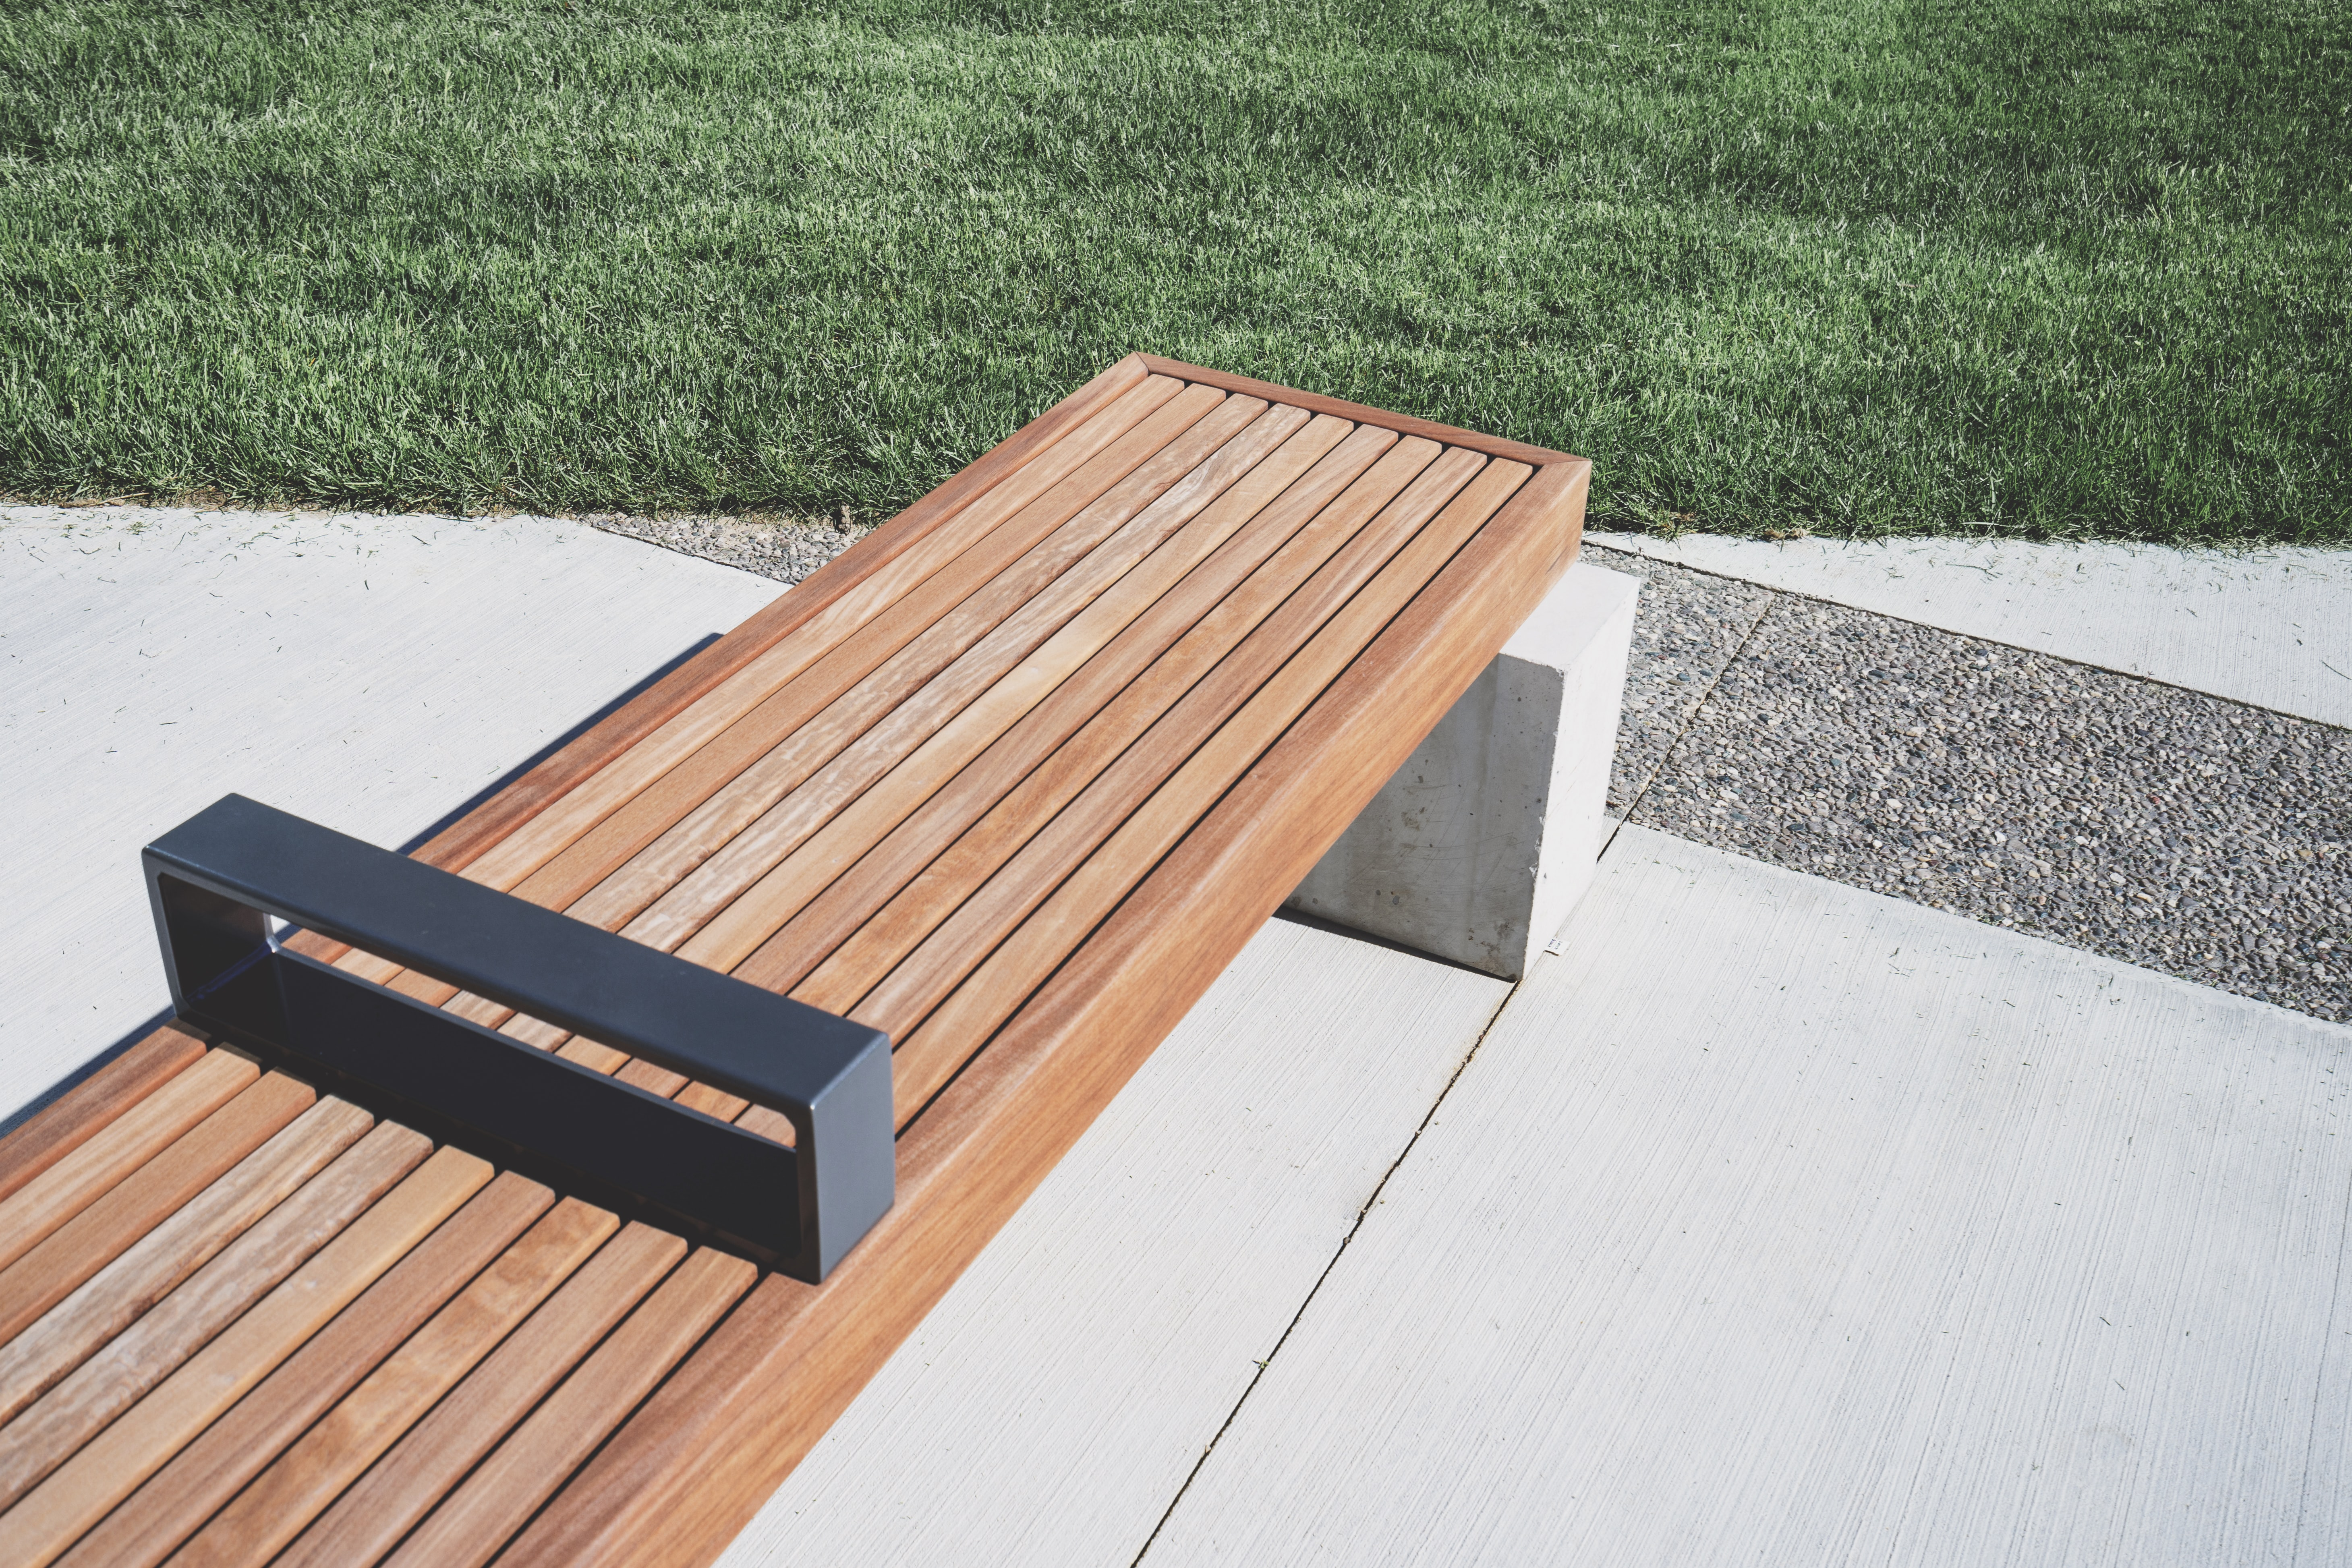 A flat wooden bench on concrete near a green lawn